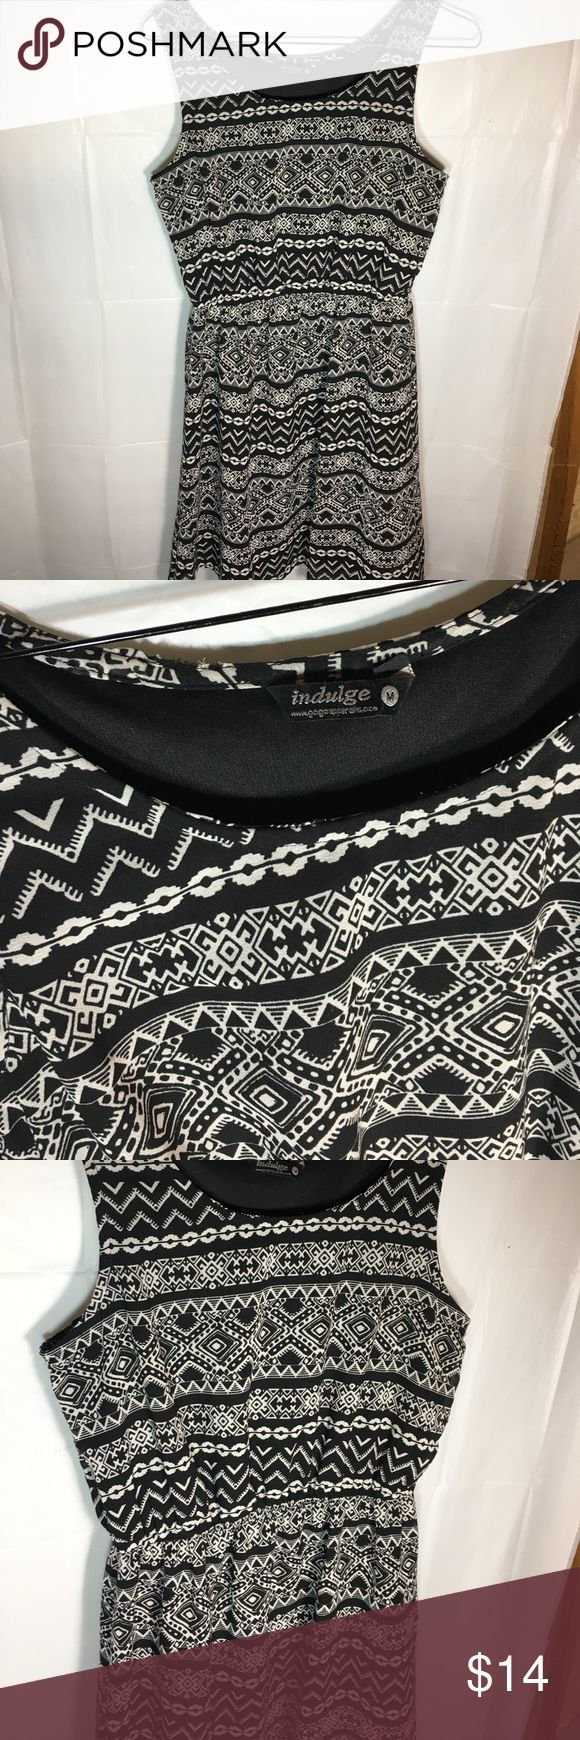 Indulge black and white tribal print dress size M Super cute and trendy tribal print dress in black and white.  Soft durable fabric, comfortable flow with black lining throughout, elastic waistband on skirt allows for movement but does not bunch or twist and creates more appealing bust line. Asymmetrical hem flattering for every body. Perfect for any occasion! Dresses